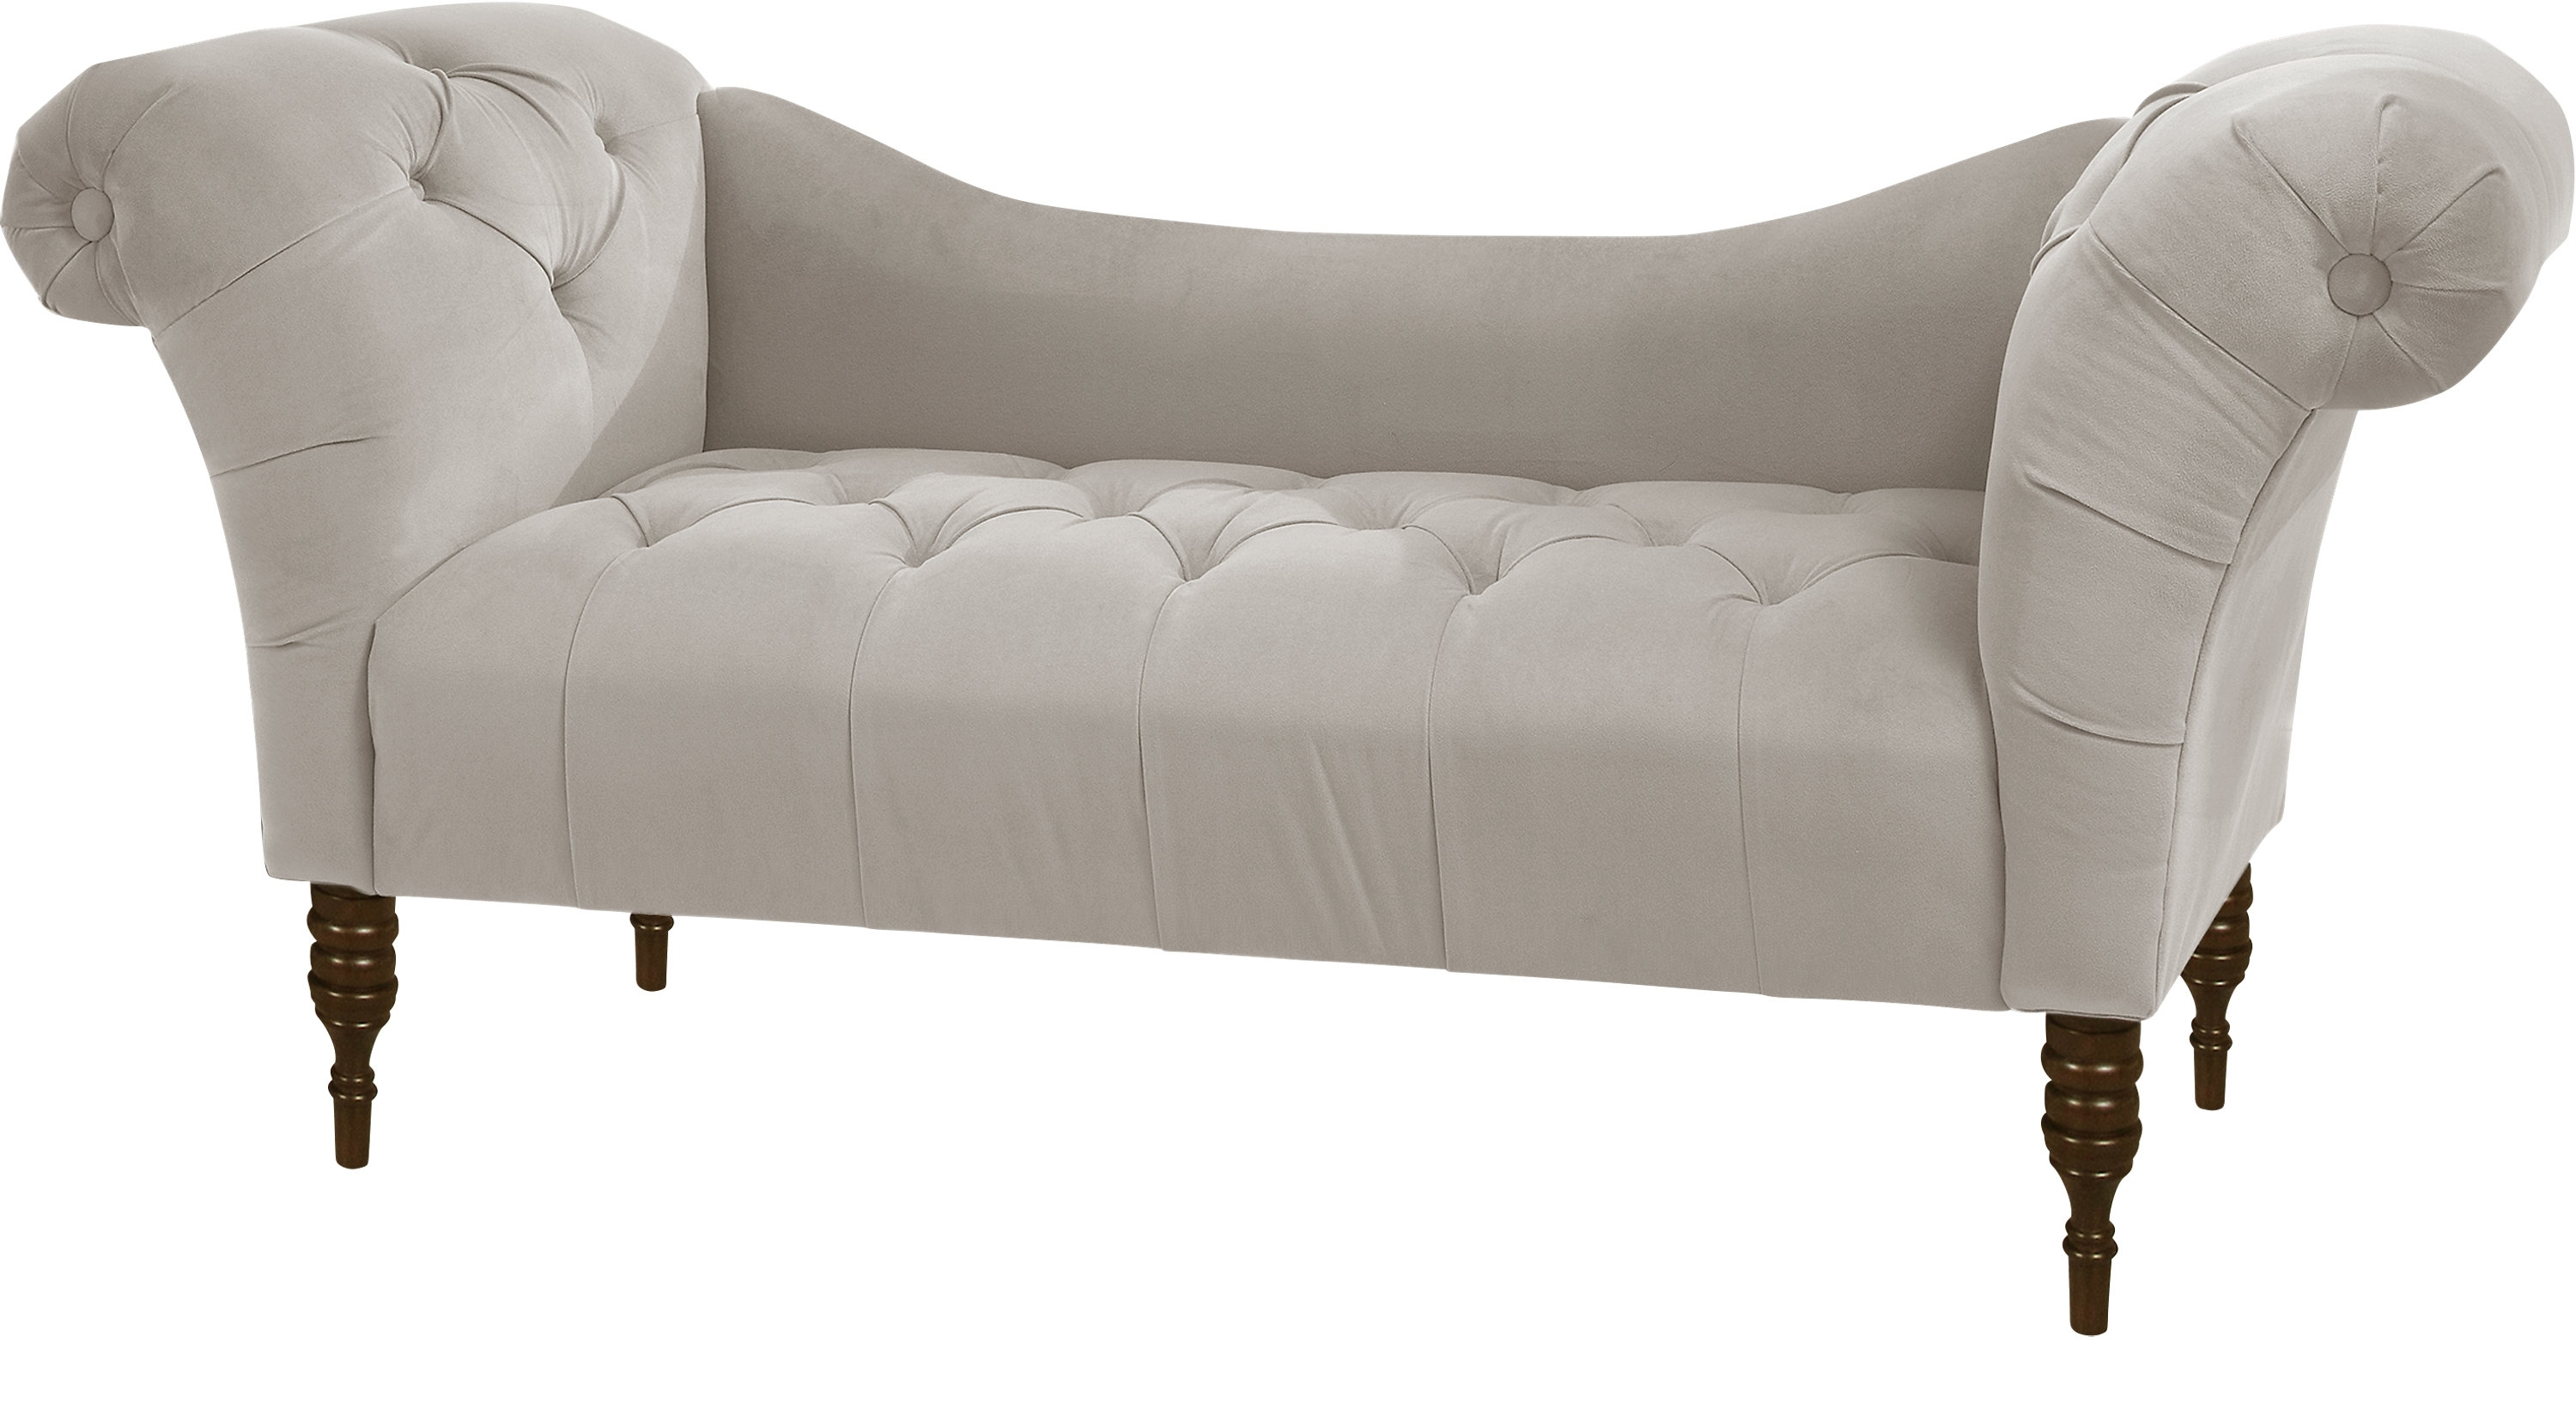 Well Known Grey Chaise Lounges Regarding Grey Chaises – Grey Chaise Lounge Sofas (View 14 of 15)